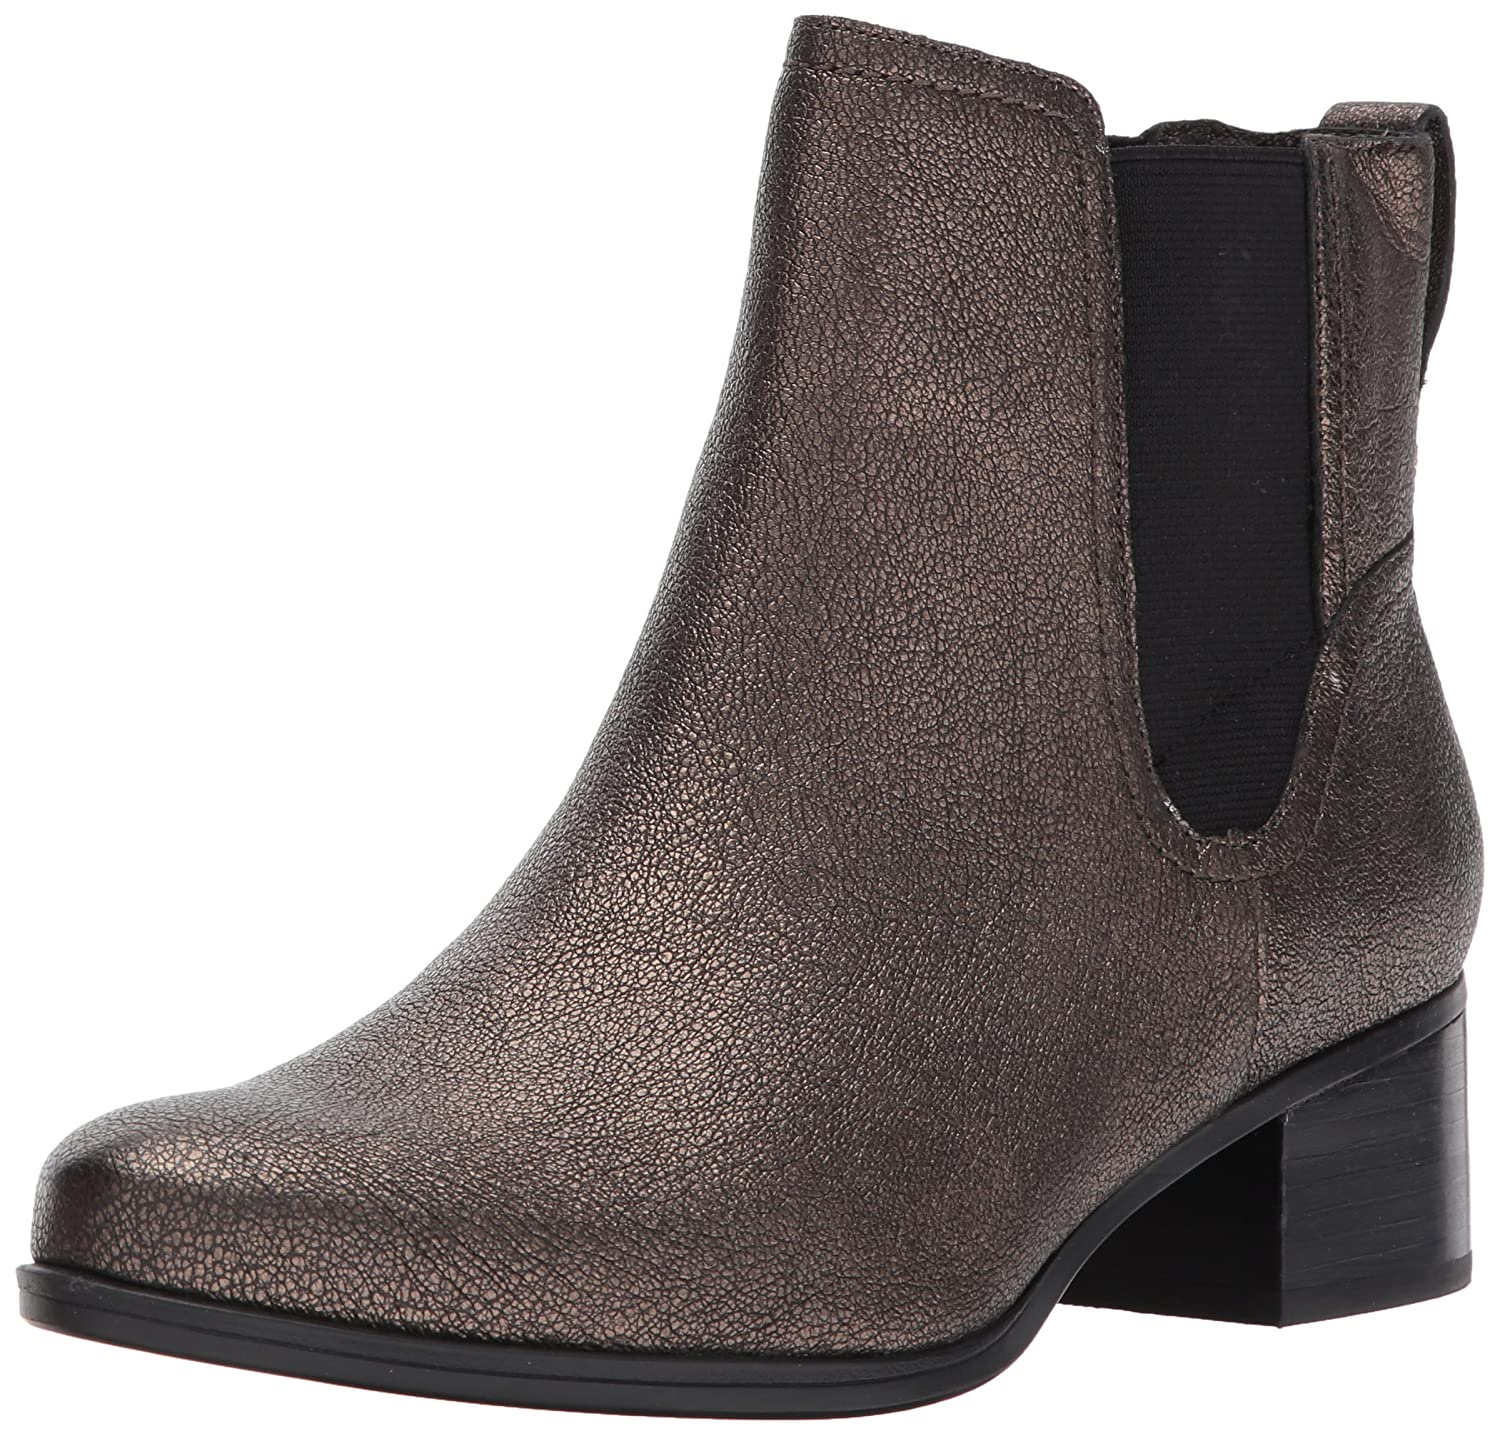 Naturalizer Women's Dallas Ankle Bootie B06Y6DY6D7 6 B(M) US|Bronze